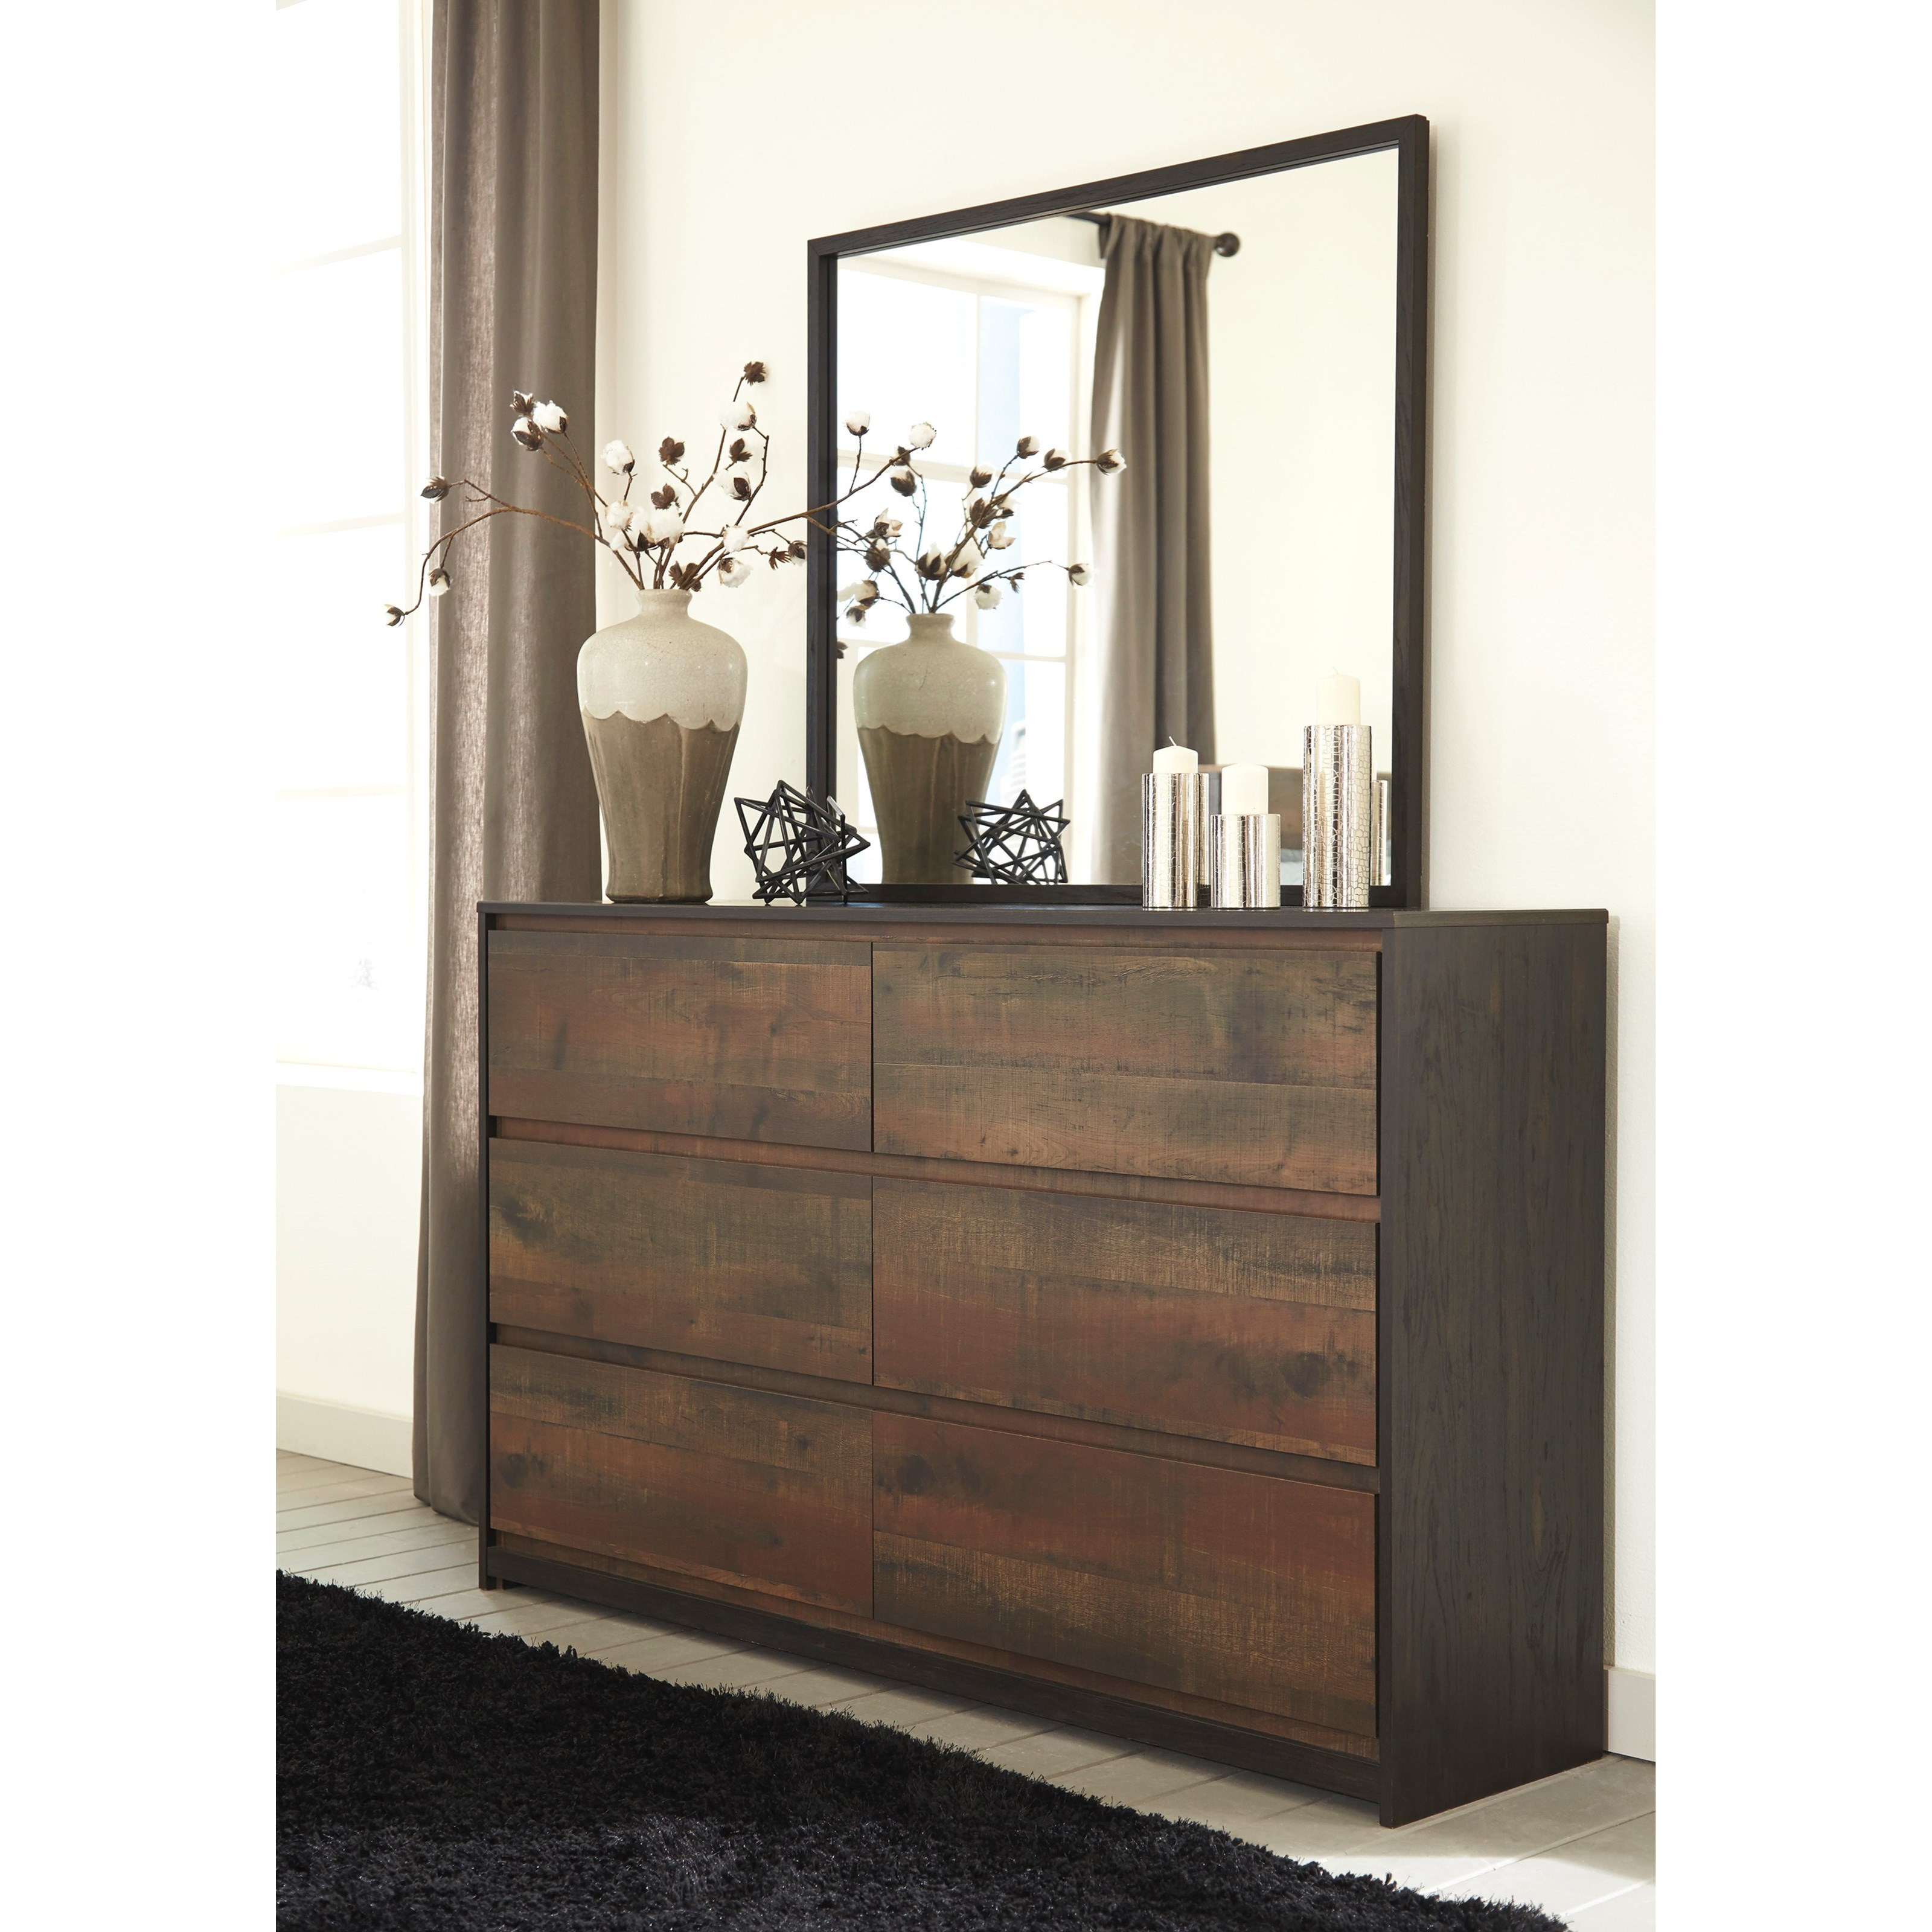 Modern Rustic Dresser Bedroom Mirror By Signature Design By Ashley Wolf And Gardiner Wolf